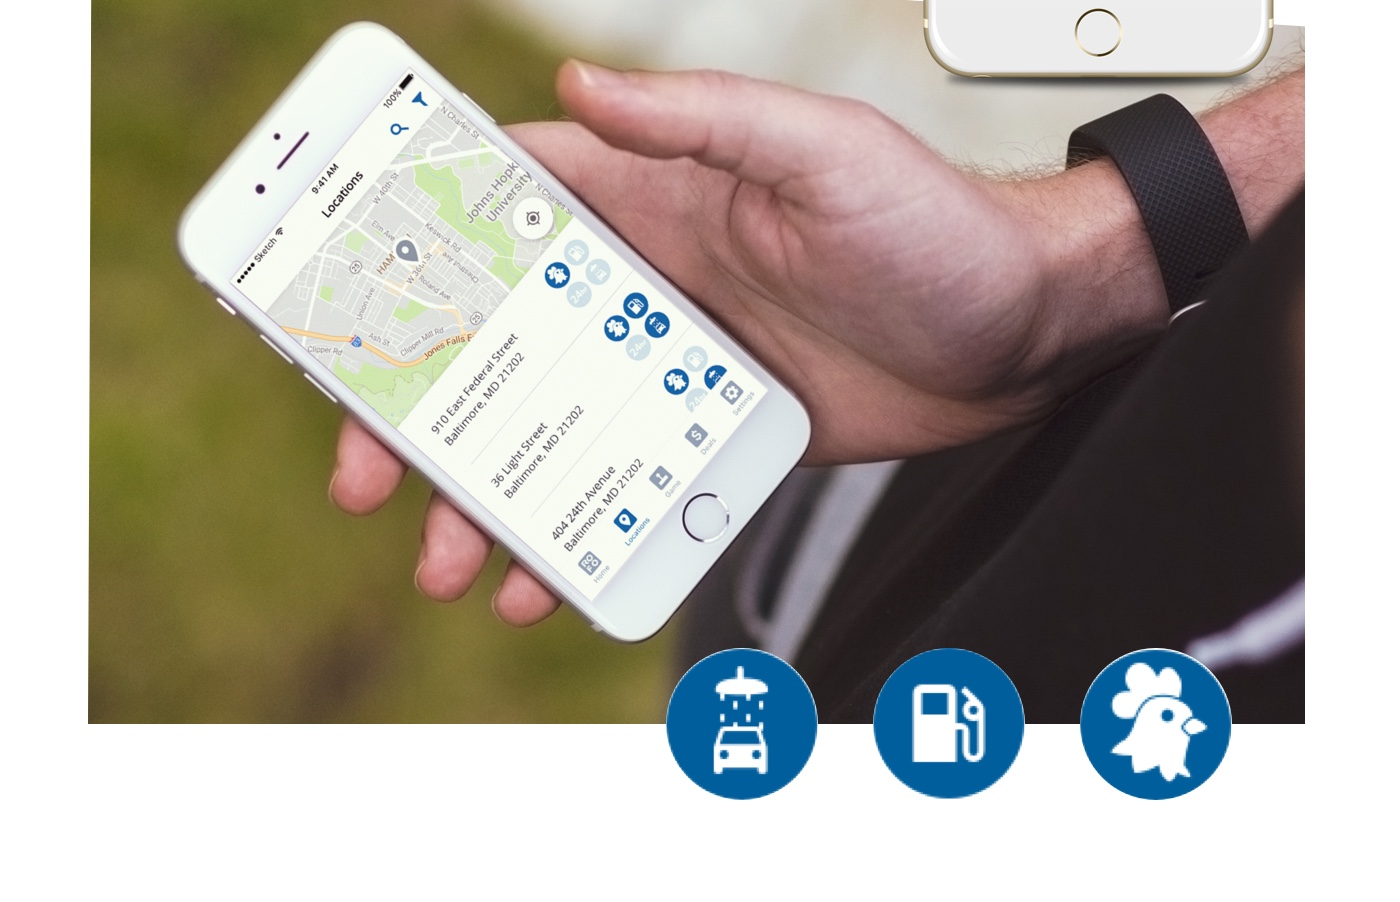 A person's hand holding an iphone with the Royal Farms app showing nearby locations